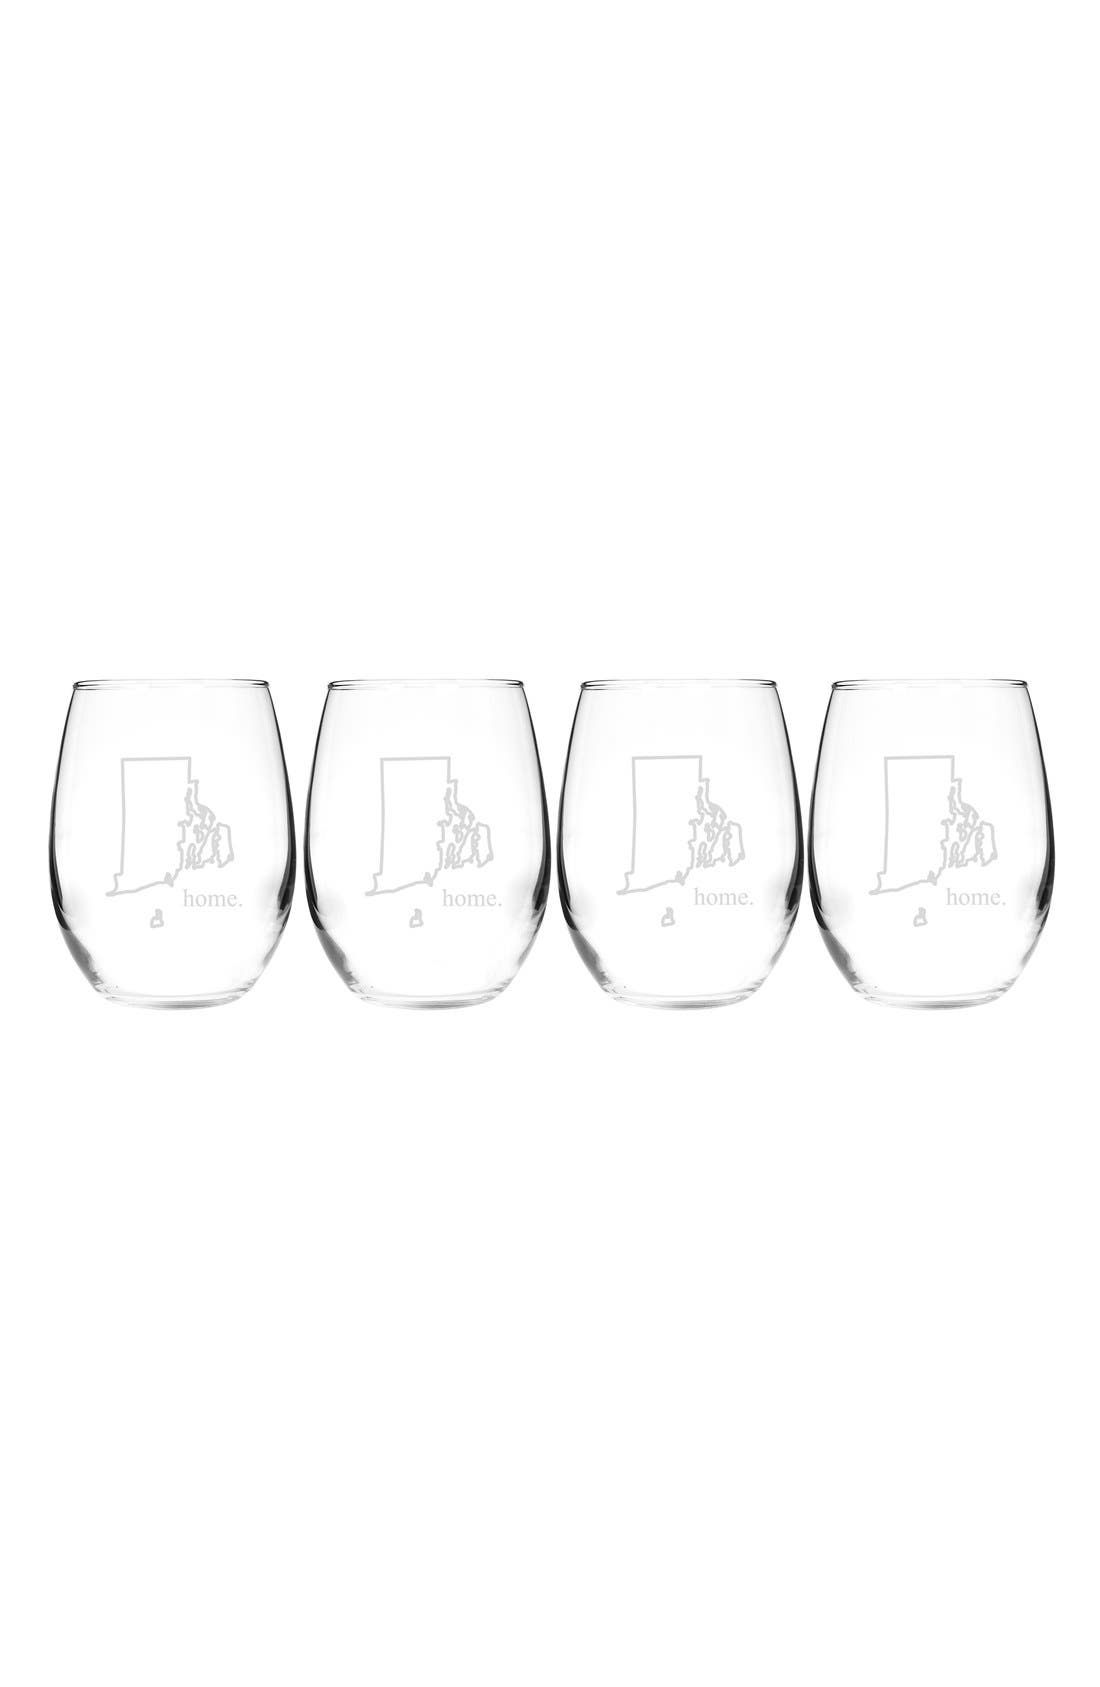 Home State Set of 4 Stemless Wine Glasses,                             Main thumbnail 40, color,